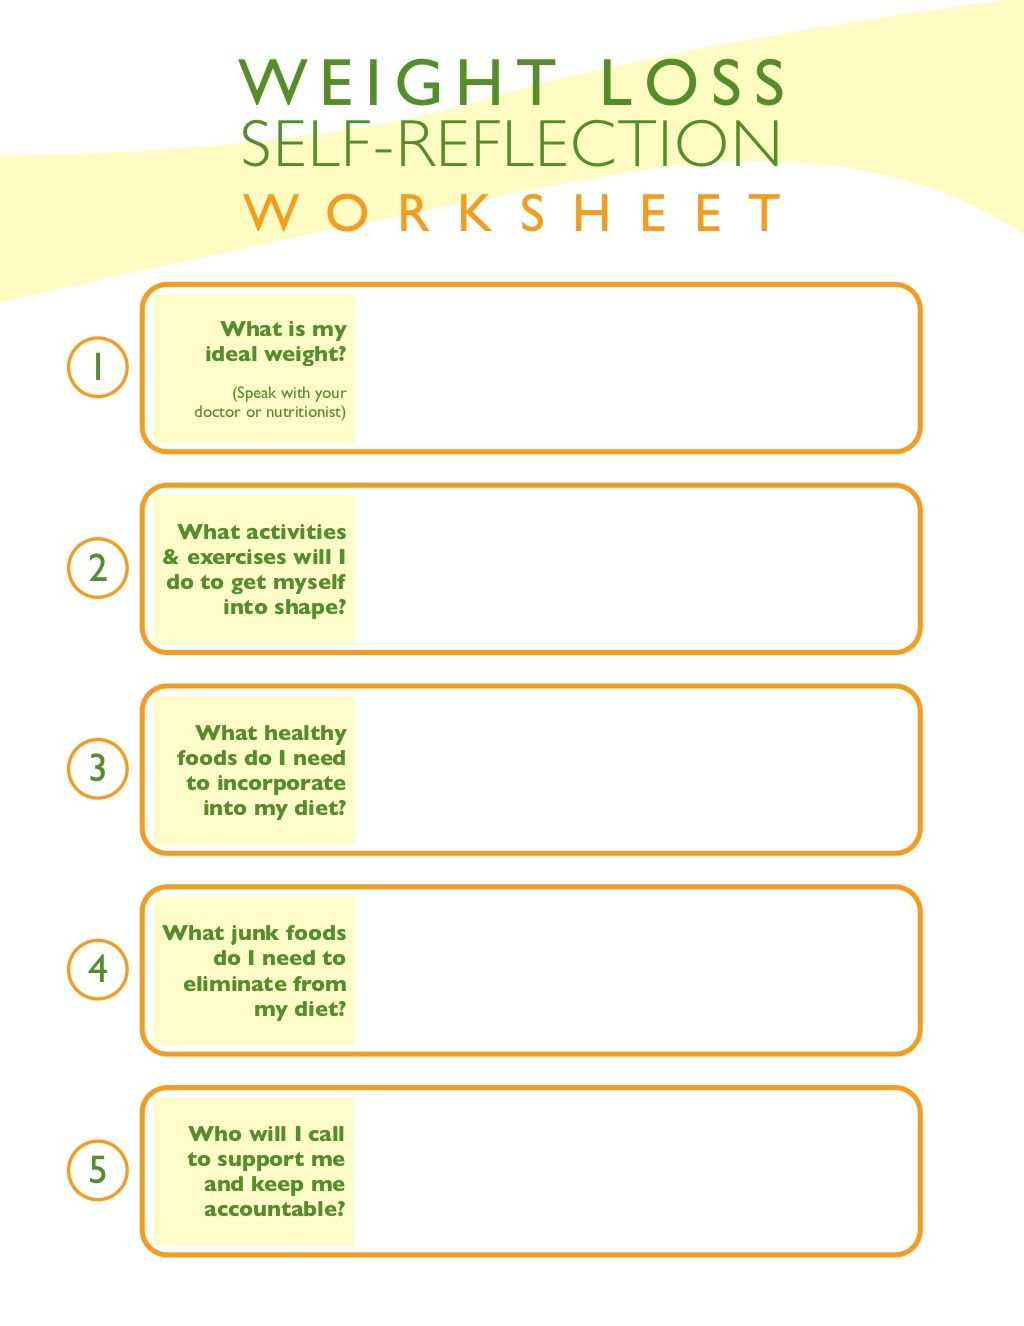 weight loss self reflection worksheet by my workouts pay via